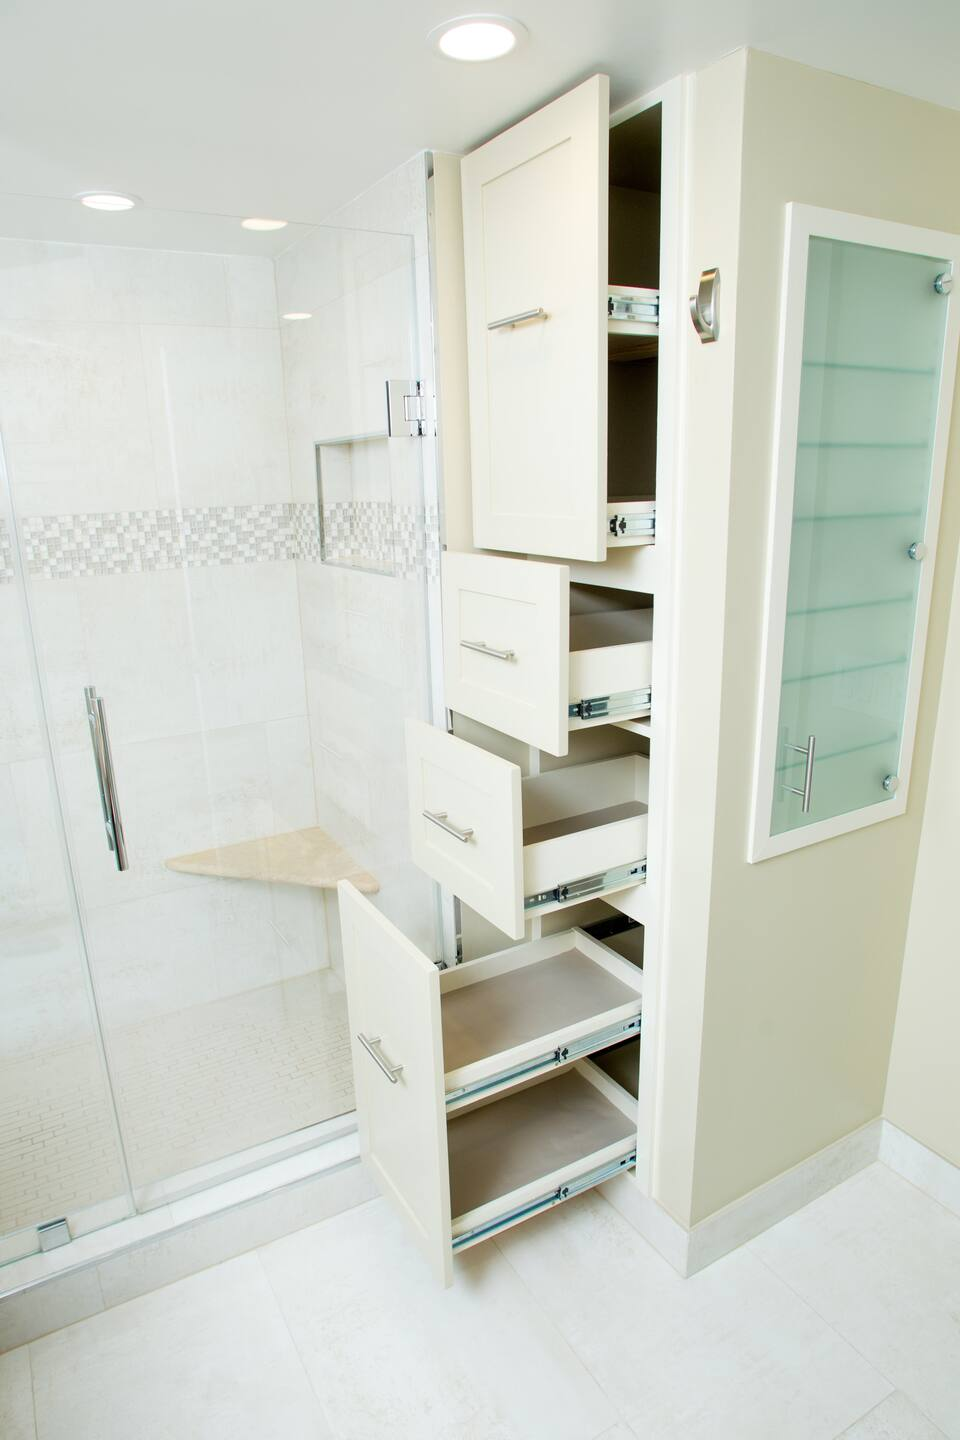 12 Sensational Bathroom Cabinet Design Ideas